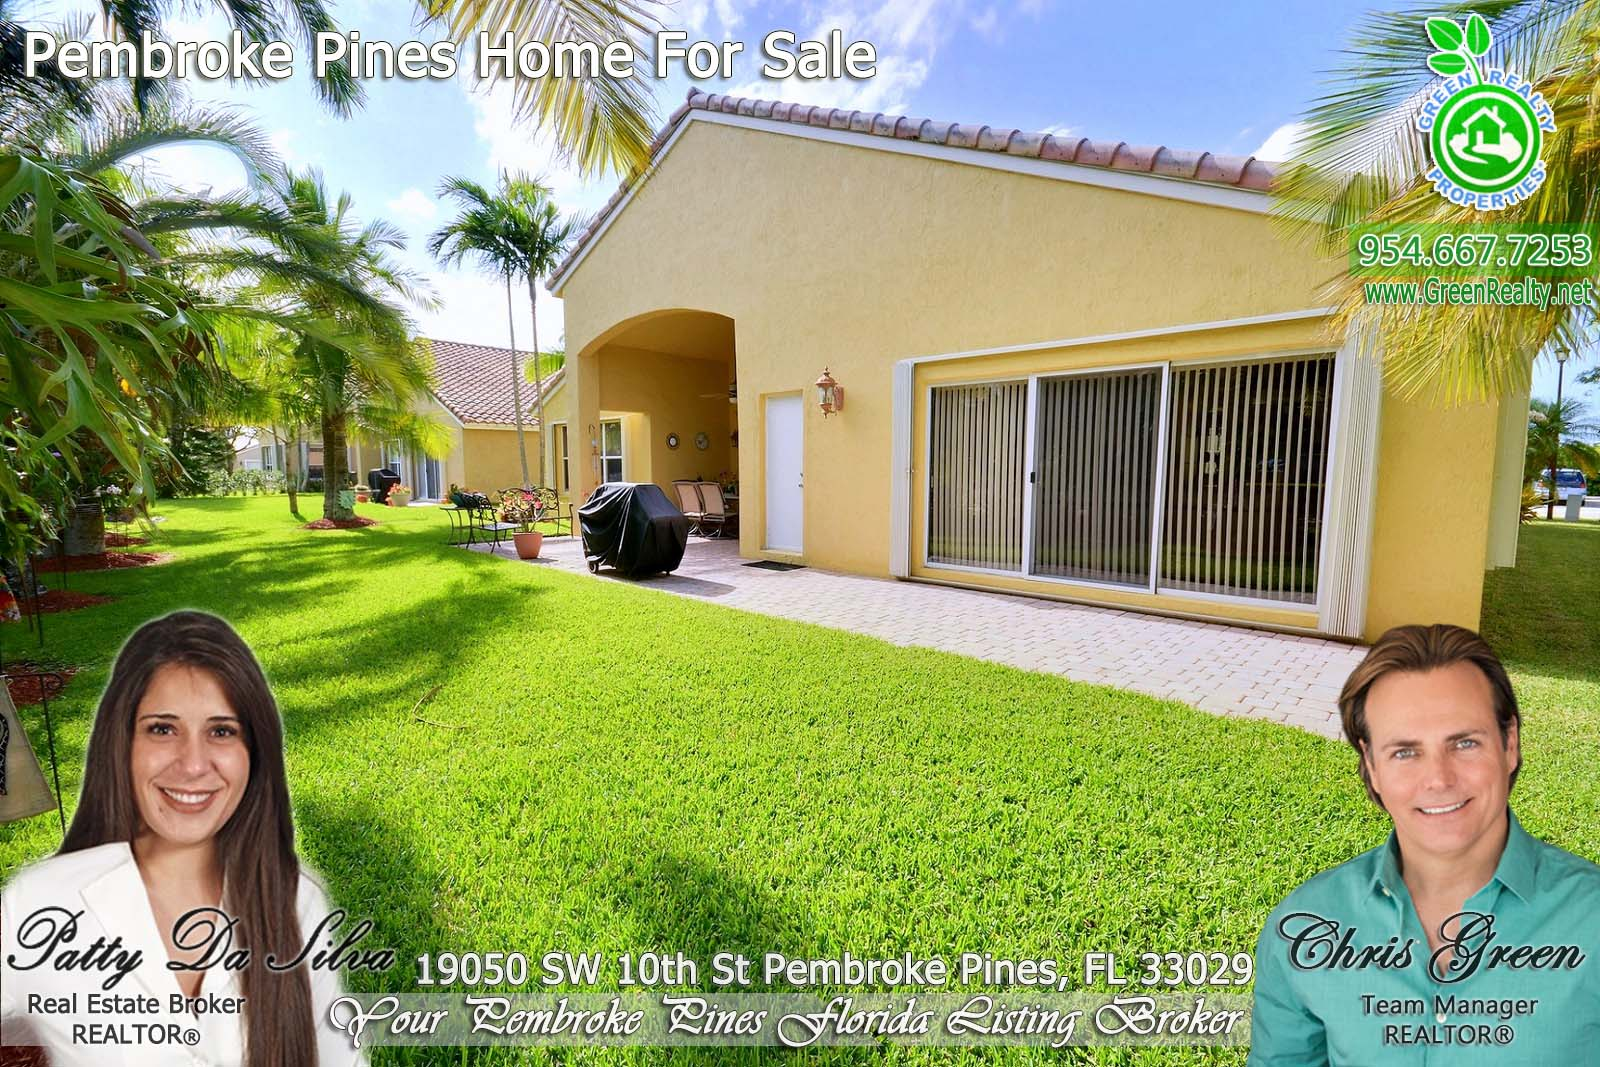 32 Homes For Sale in Encantada Pembroke Pines (4)